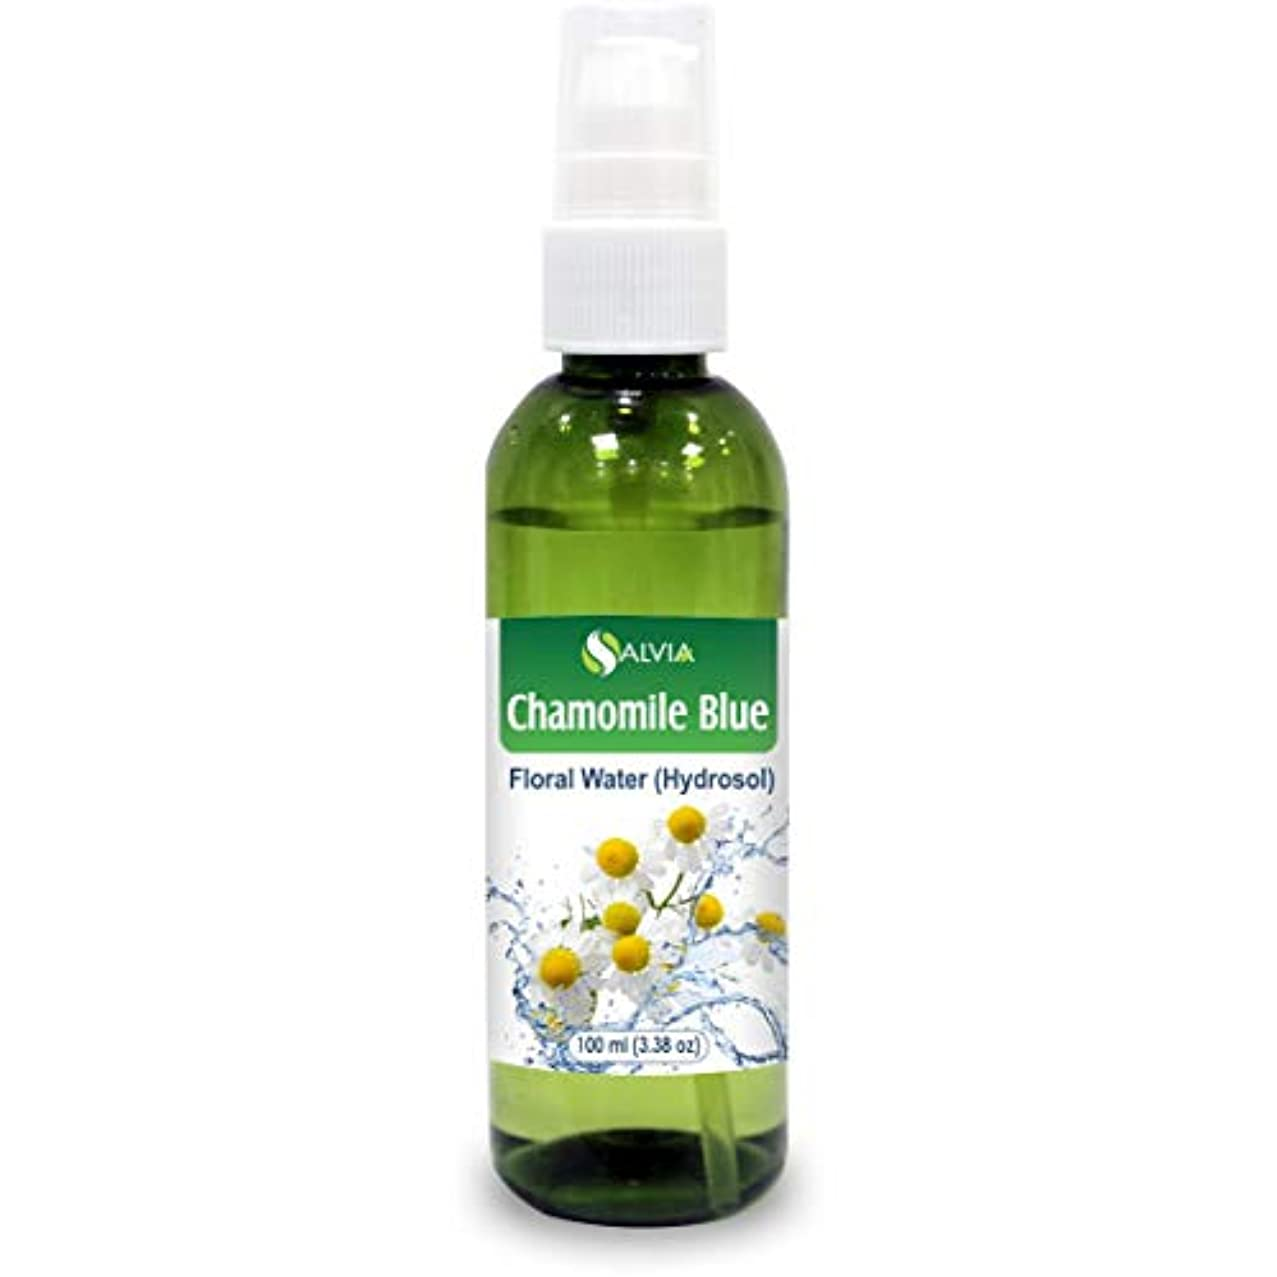 Chamomile Oil, Blue Floral Water 100ml (Hydrosol) 100% Pure And Natural